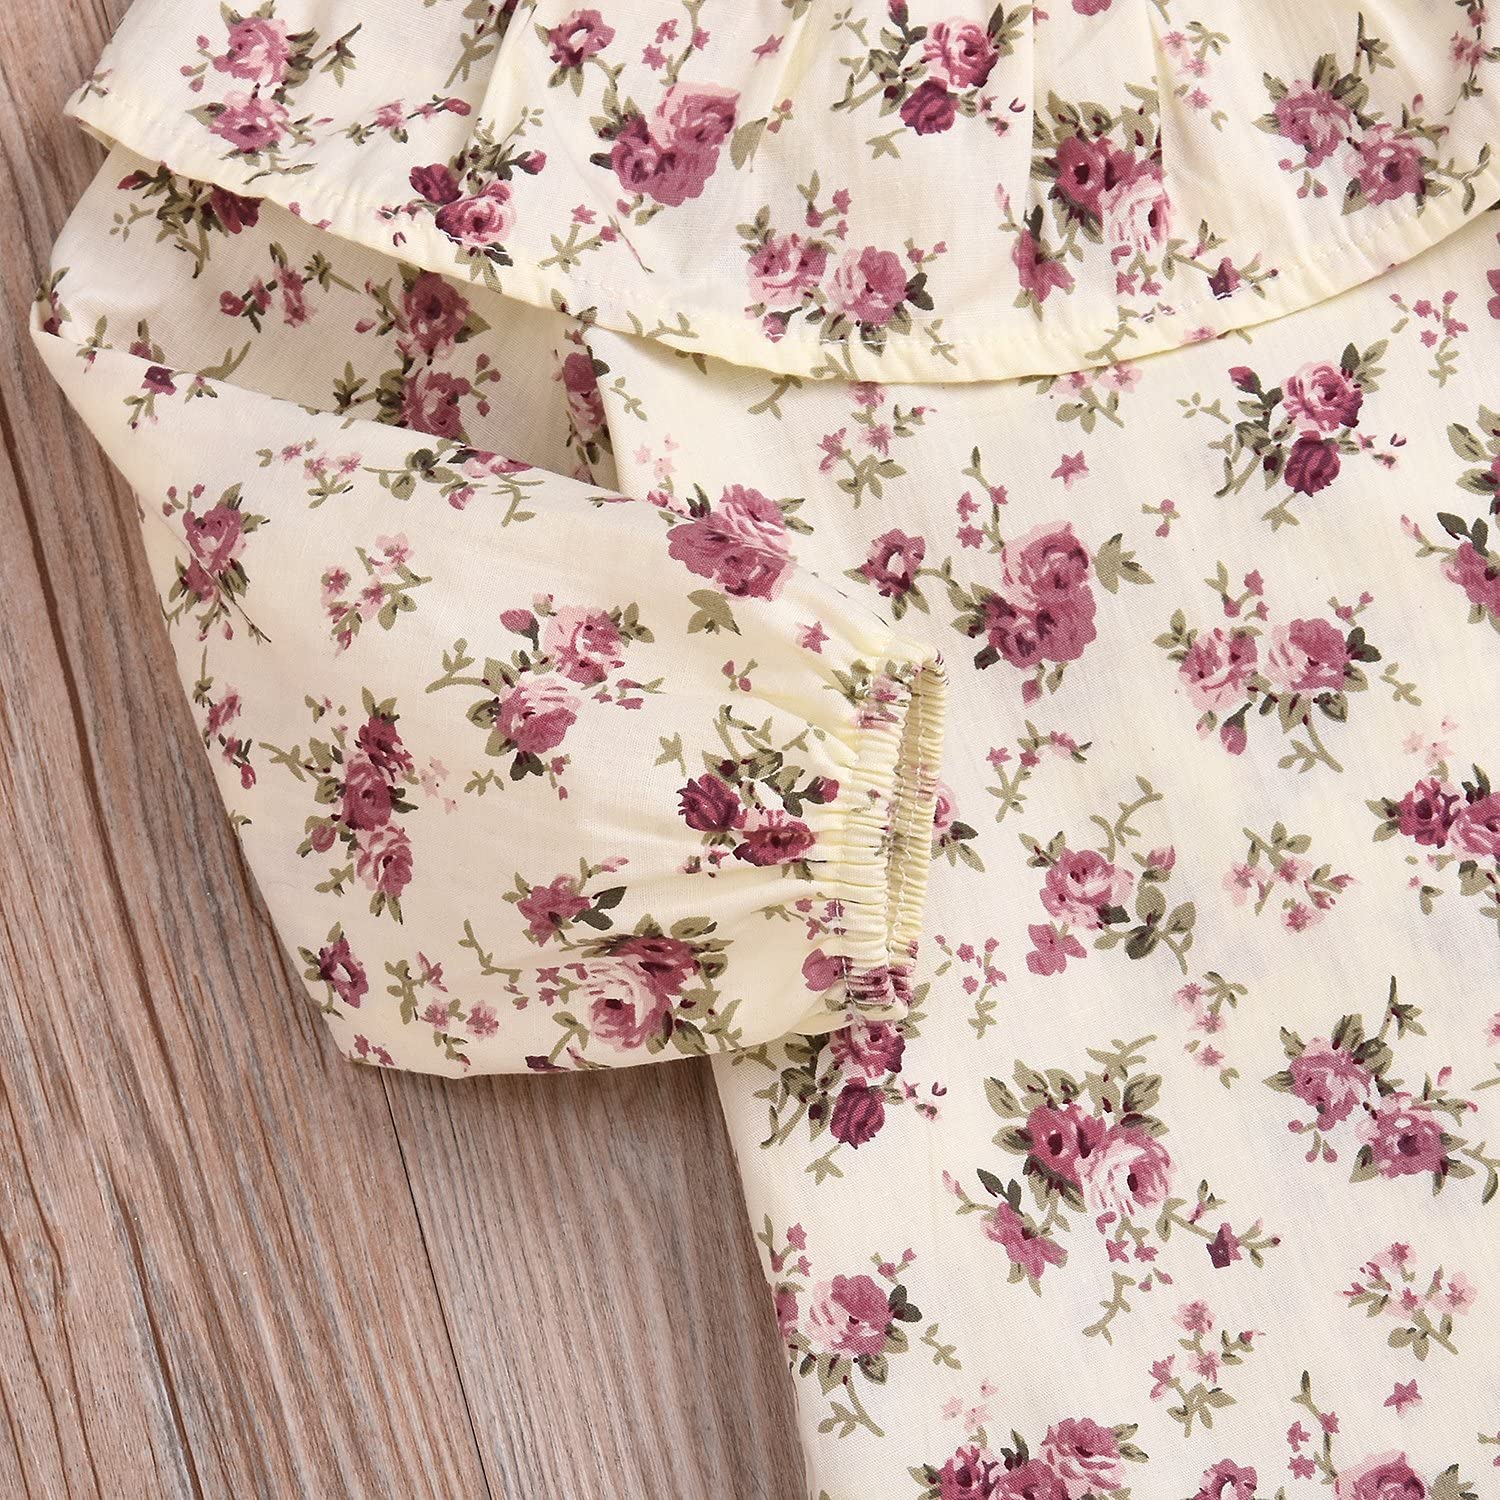 2pcs Baby Girl Long Sleeve Lotus Leaf Ruffle Collar Floral T-Shirt Top+Buttons Suspender Skirt Overalls Outfits